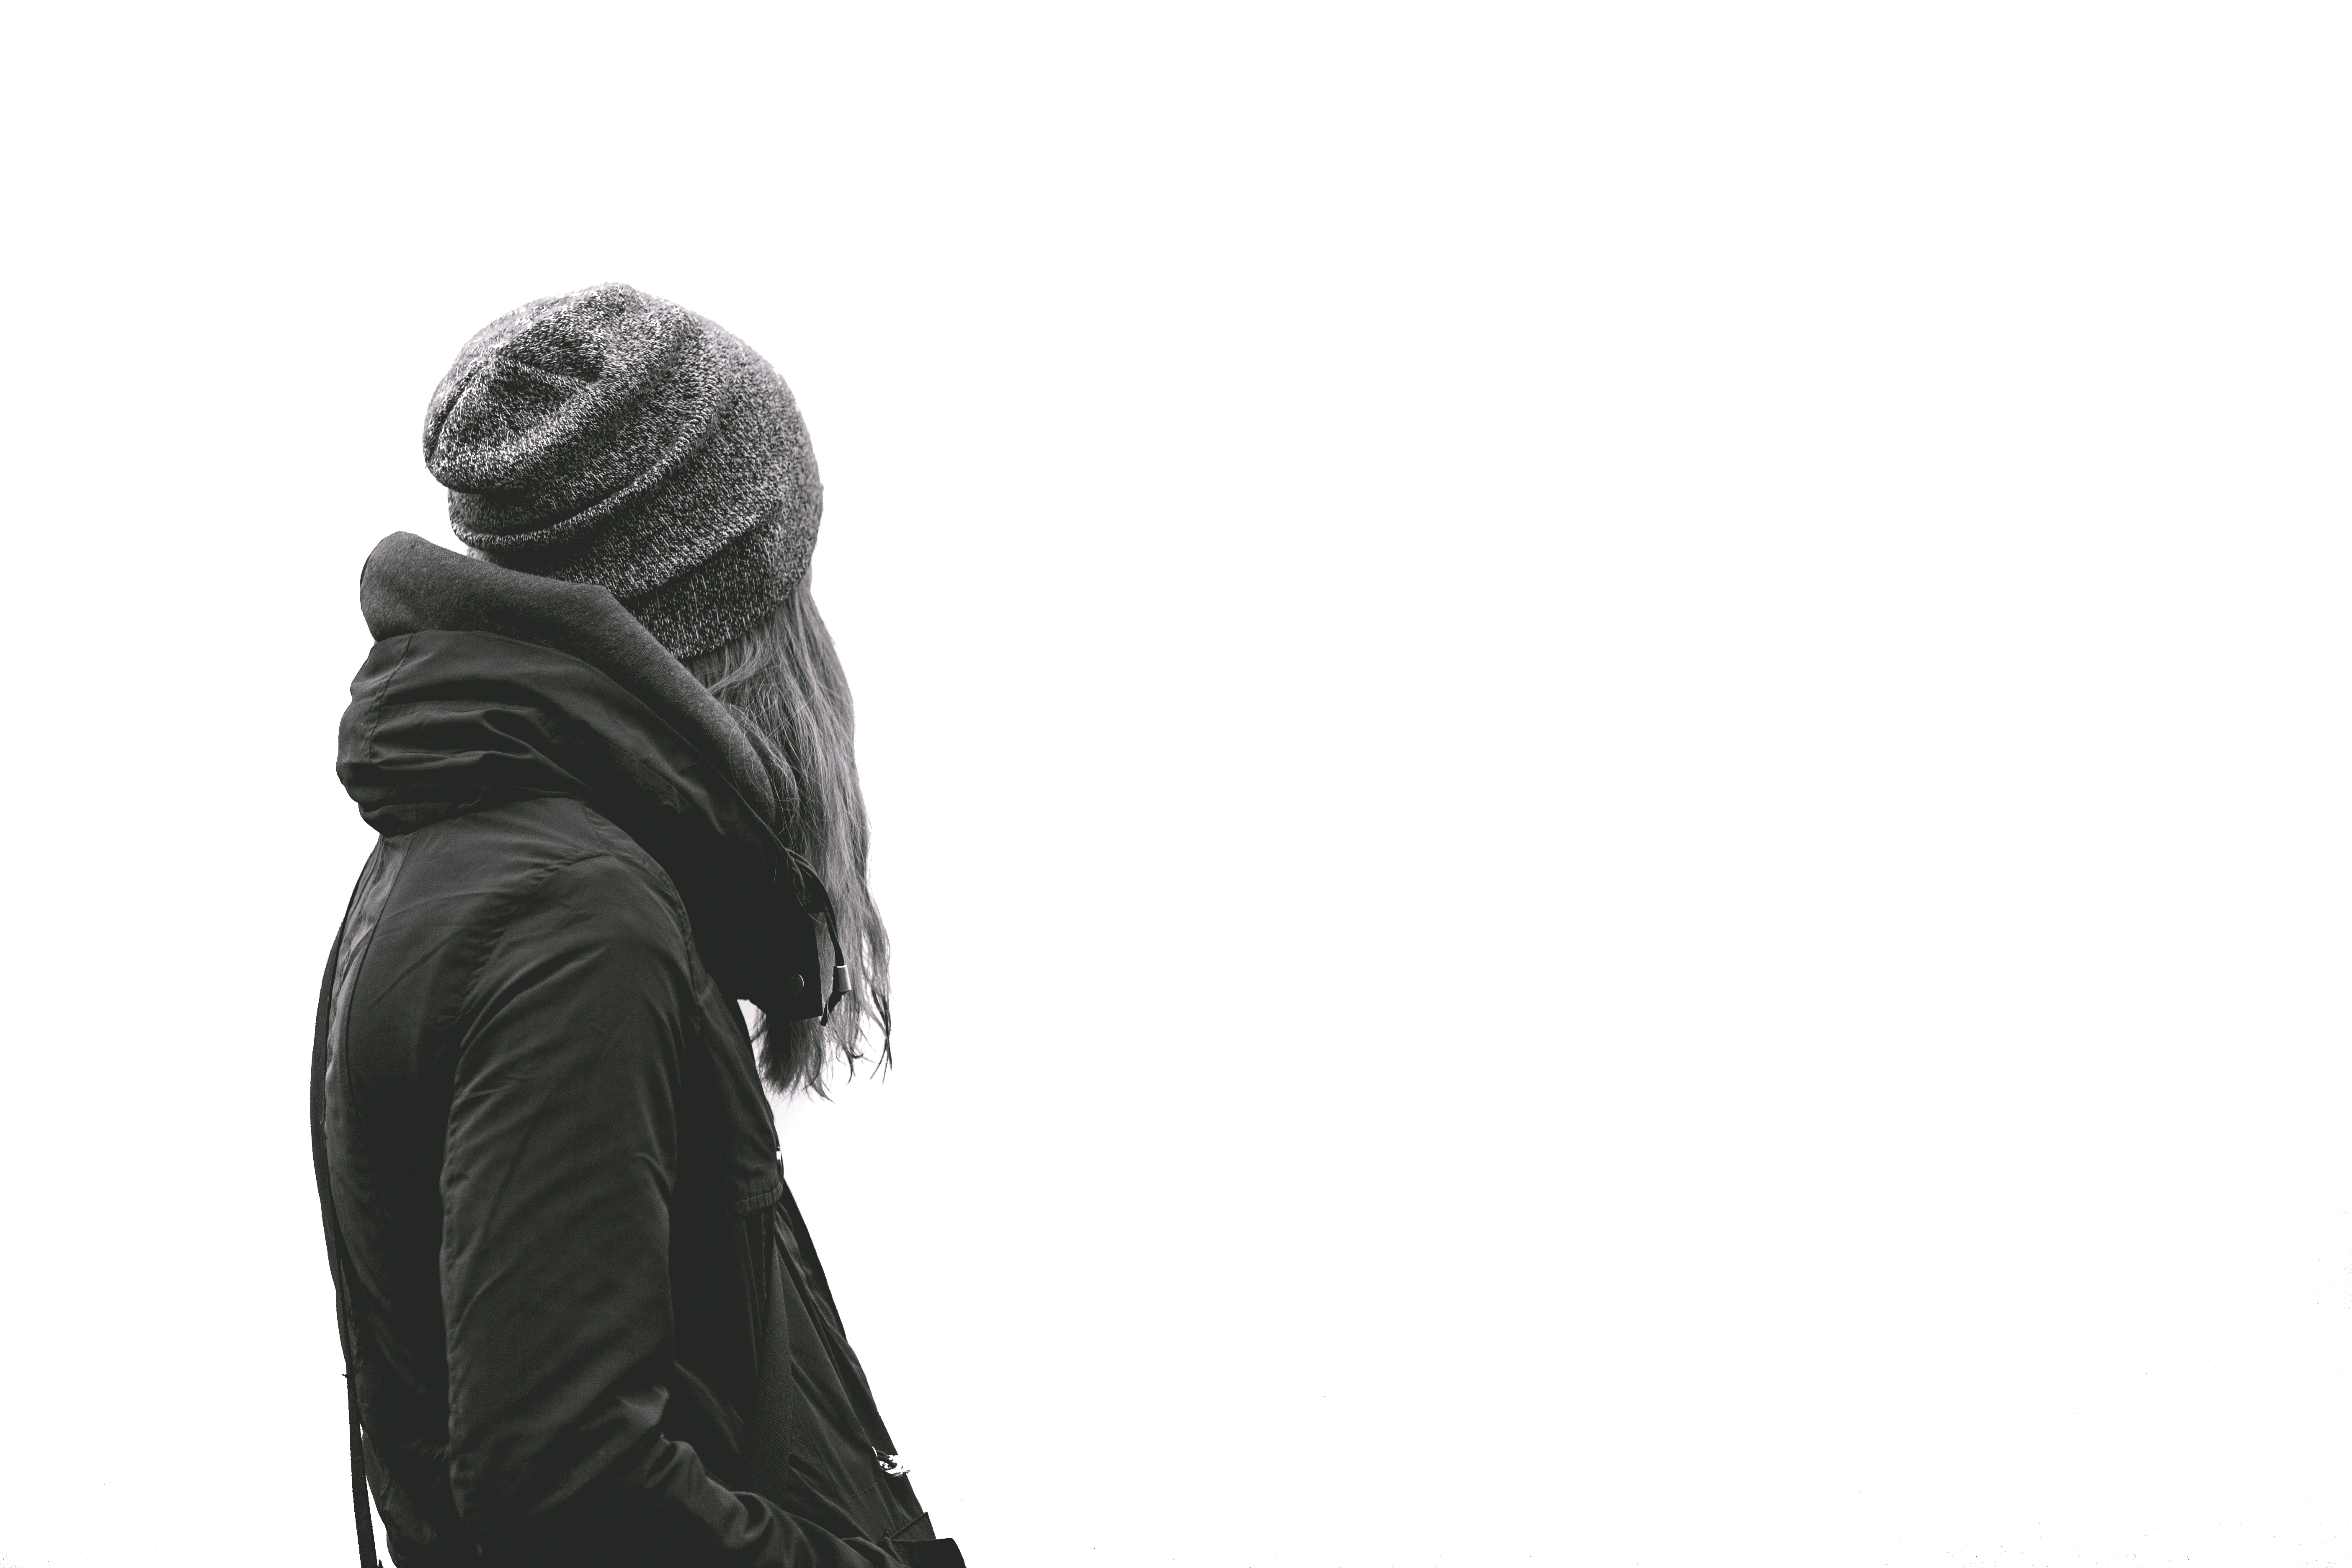 Free stock photo of black-and-white, facing away, female  Free stock phot...